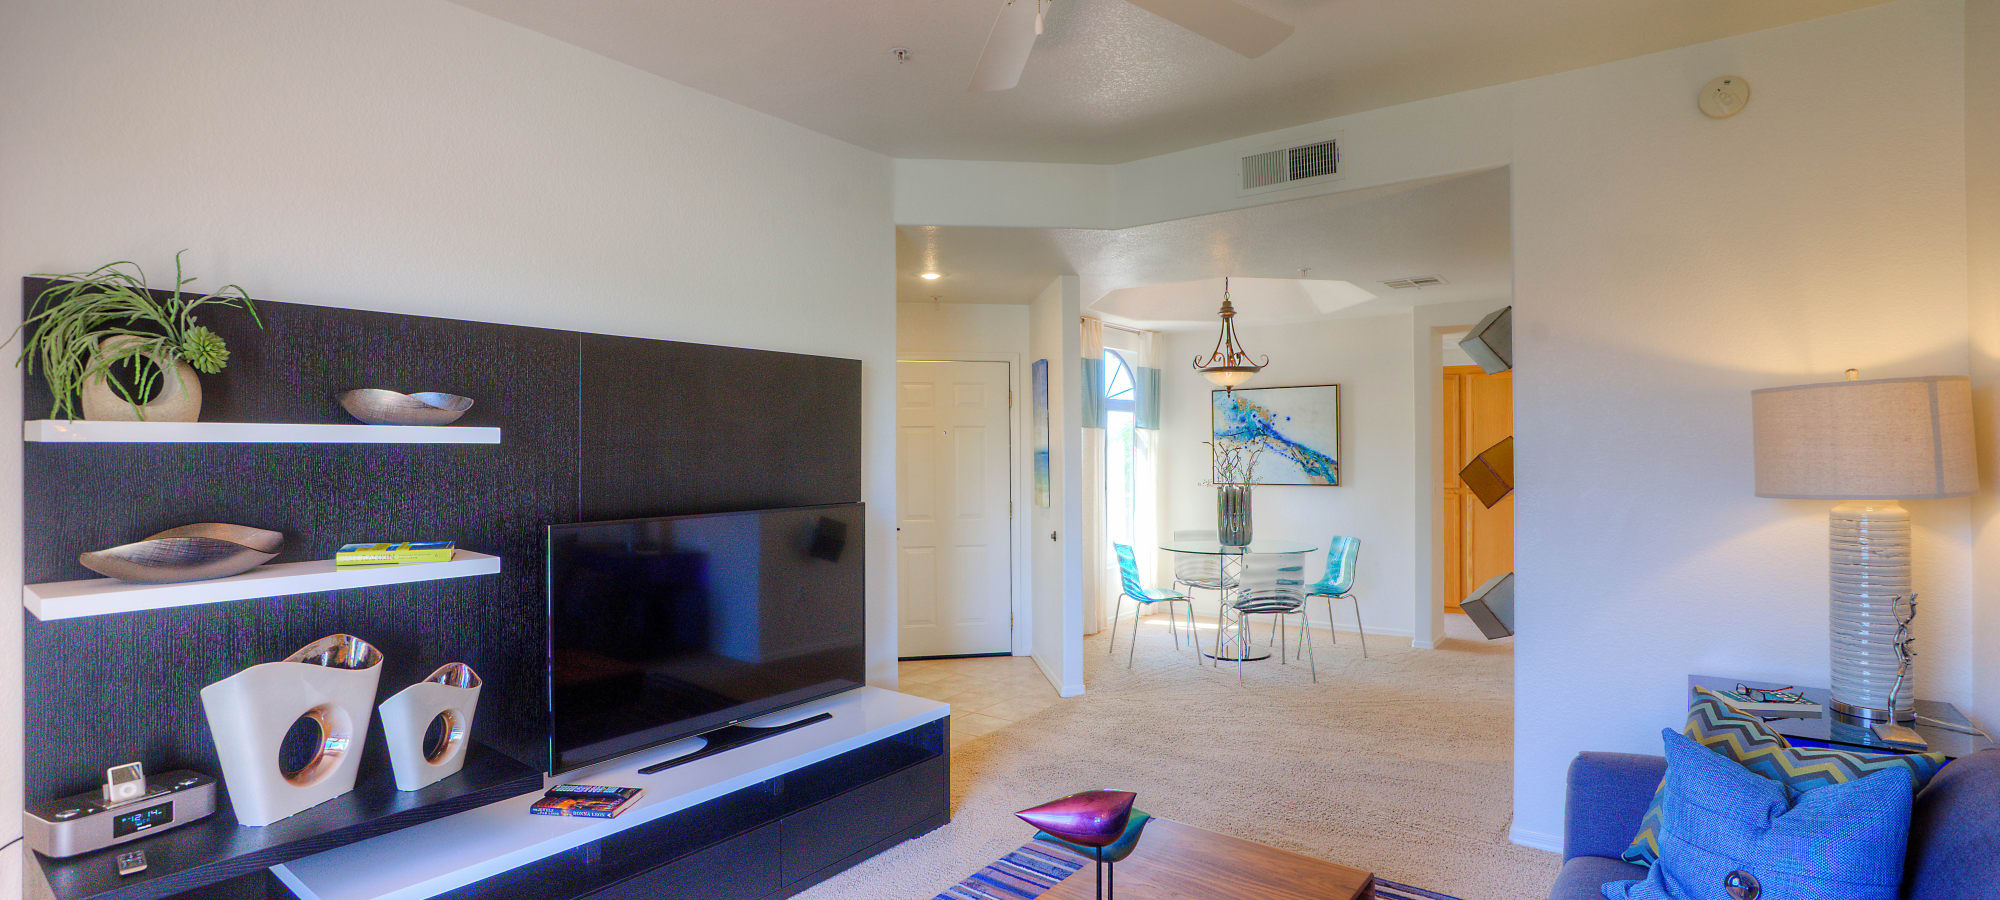 Living room next to the dining room at San Lagos in Glendale, Arizona